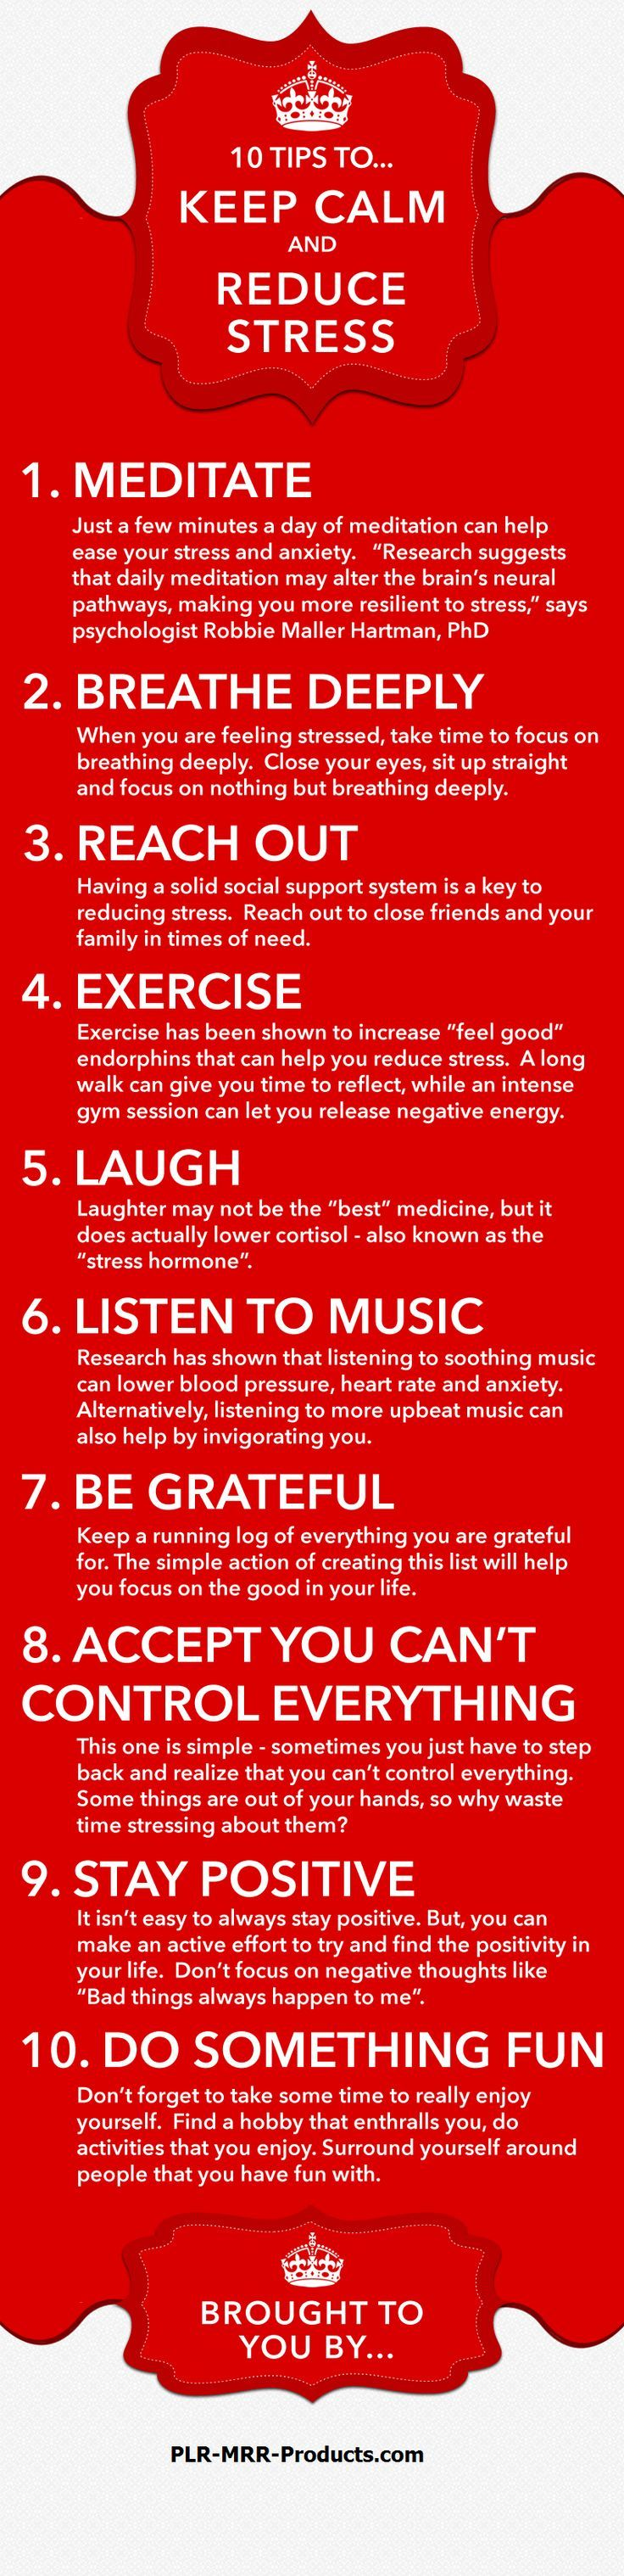 Stress-Reducing Tips. Great advice for those battling #cancer, #surviving it & wonderful for #caregivers too.